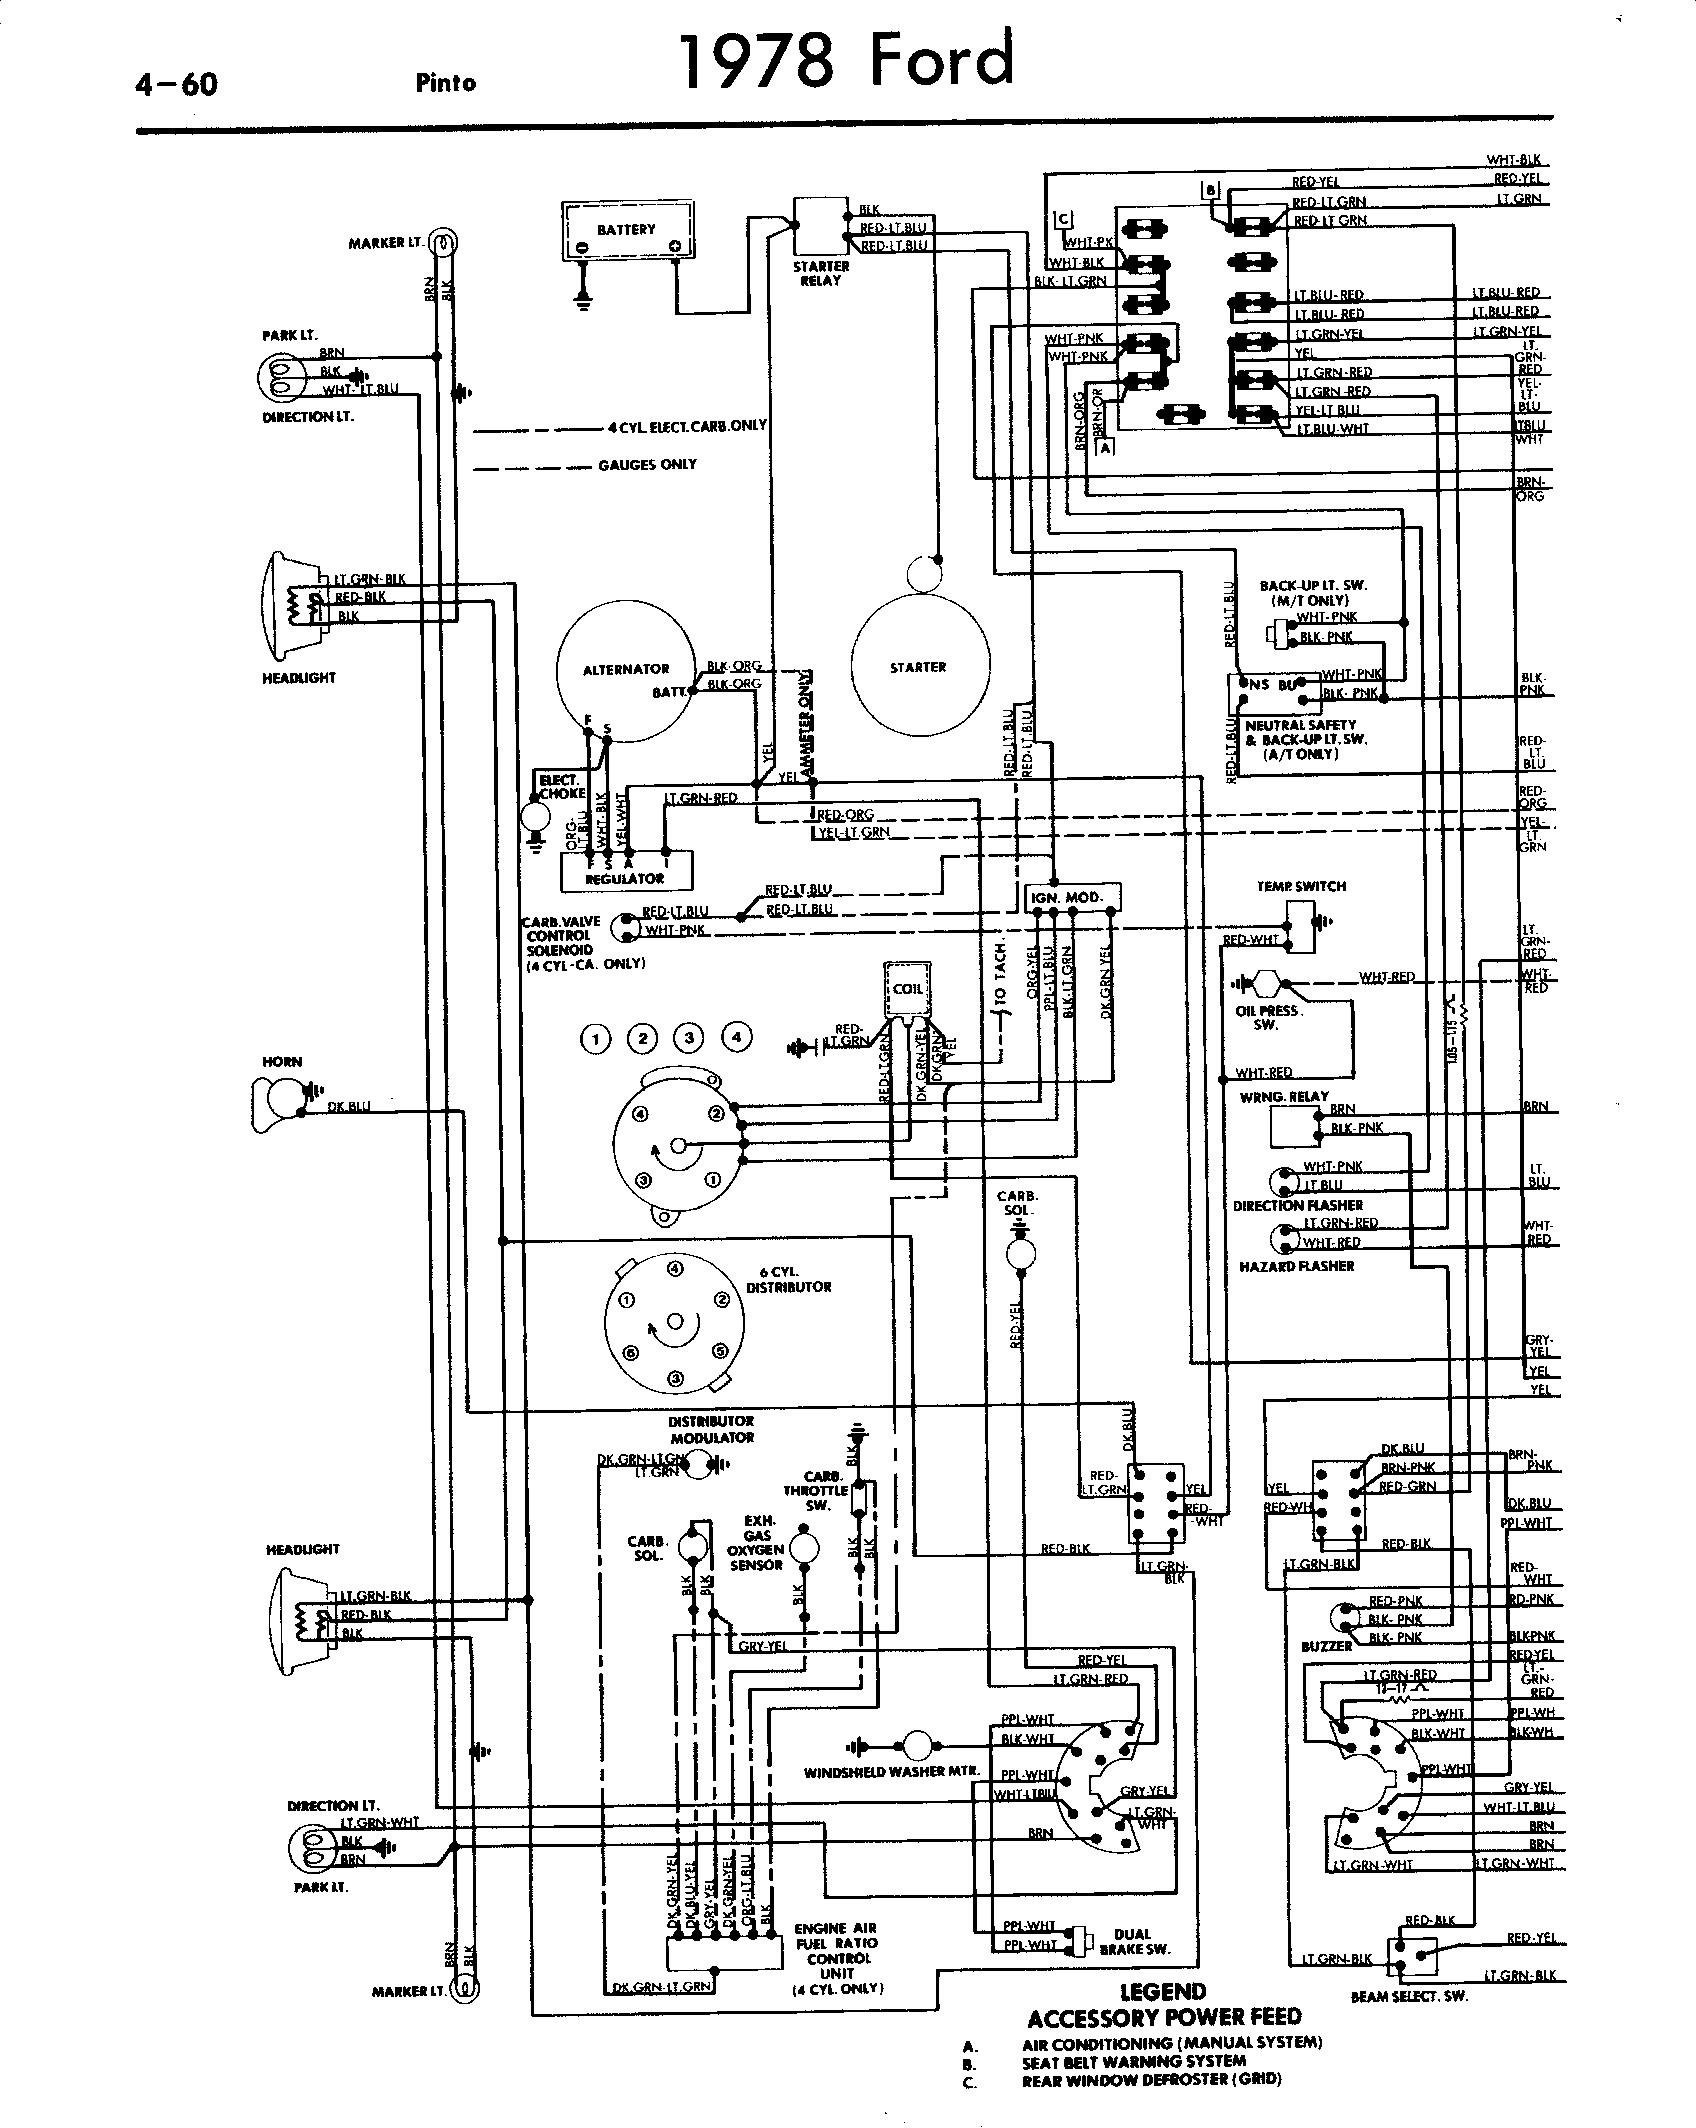 Ford 7 3 Diesel Engine Diagram 2 01 7 3 Engine Wire Diagram Wiring Info • Of Ford 7 3 Diesel Engine Diagram 2